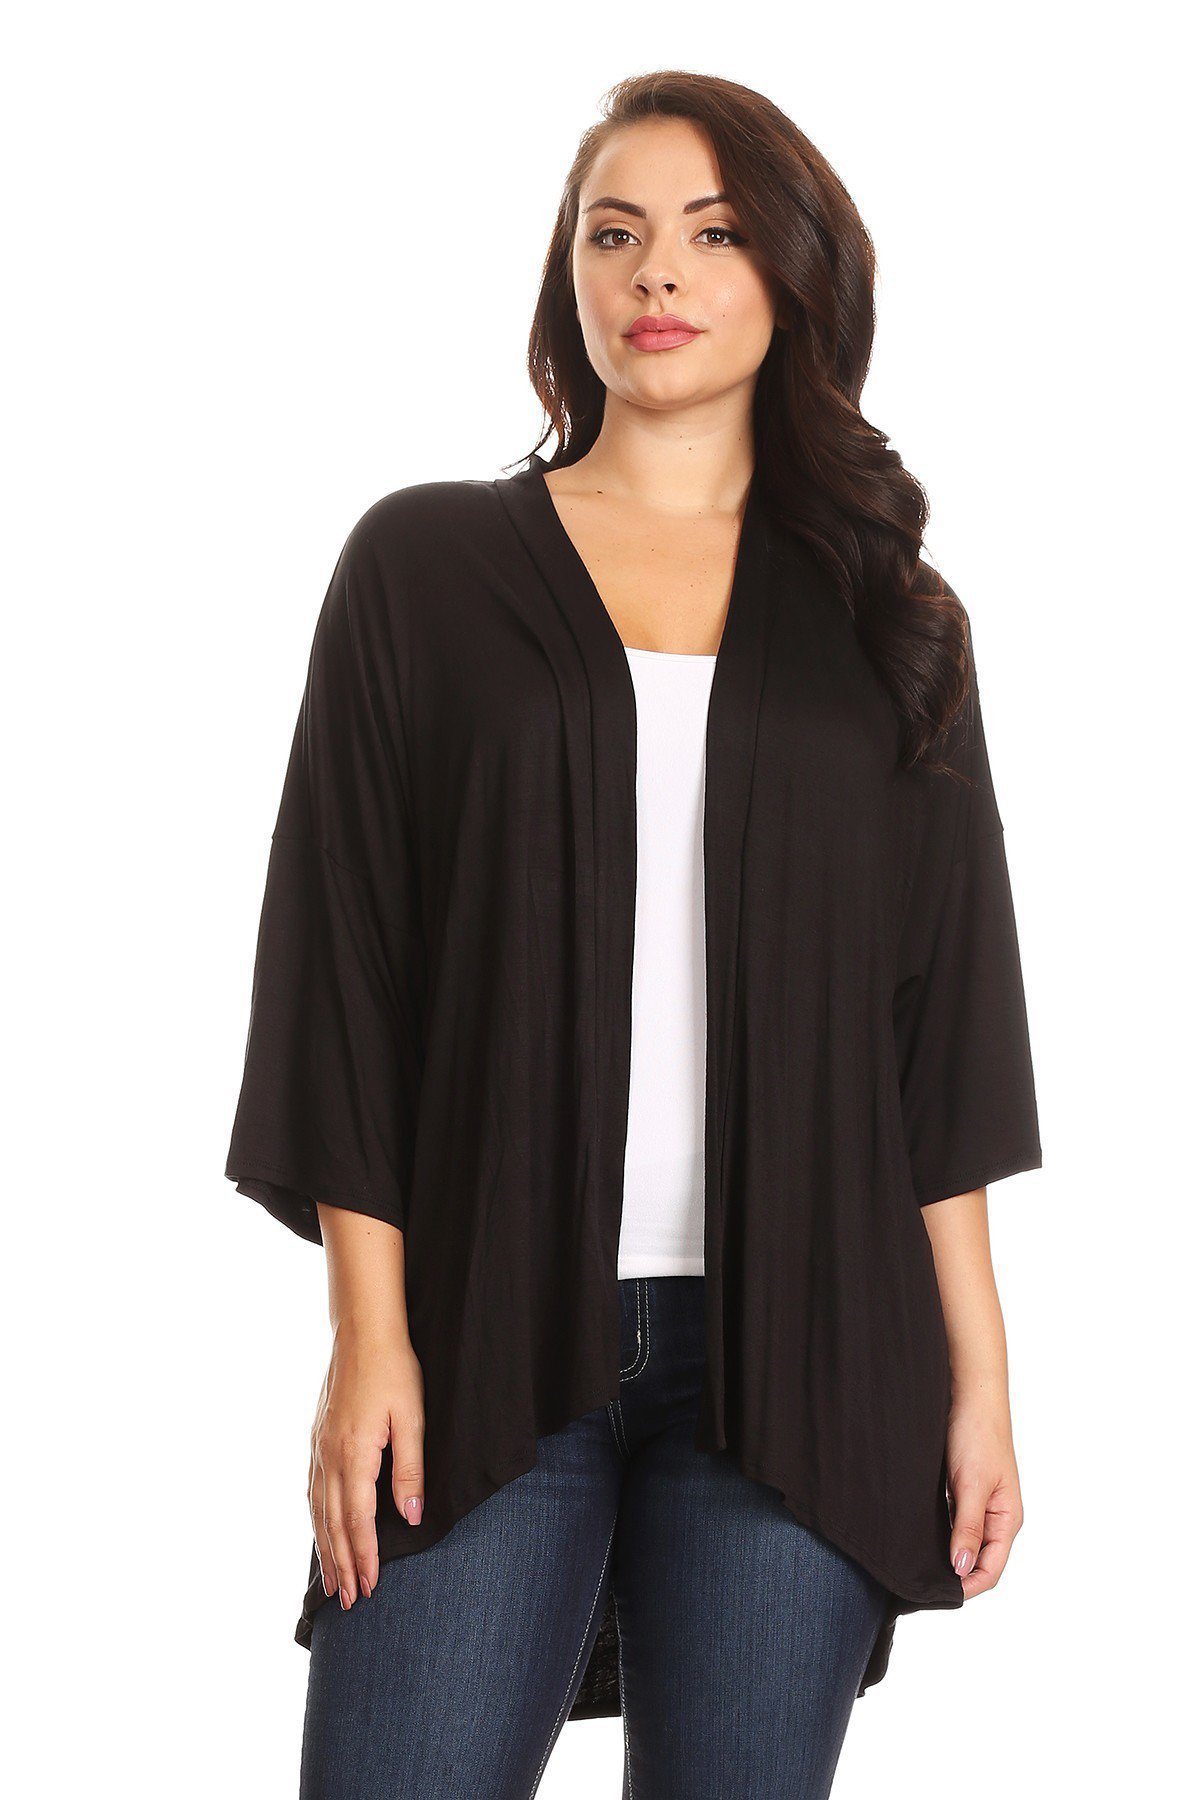 Modern Kiwi Plus Size Solid 3/4 Sleeve Open Front Cardigan Black 3X